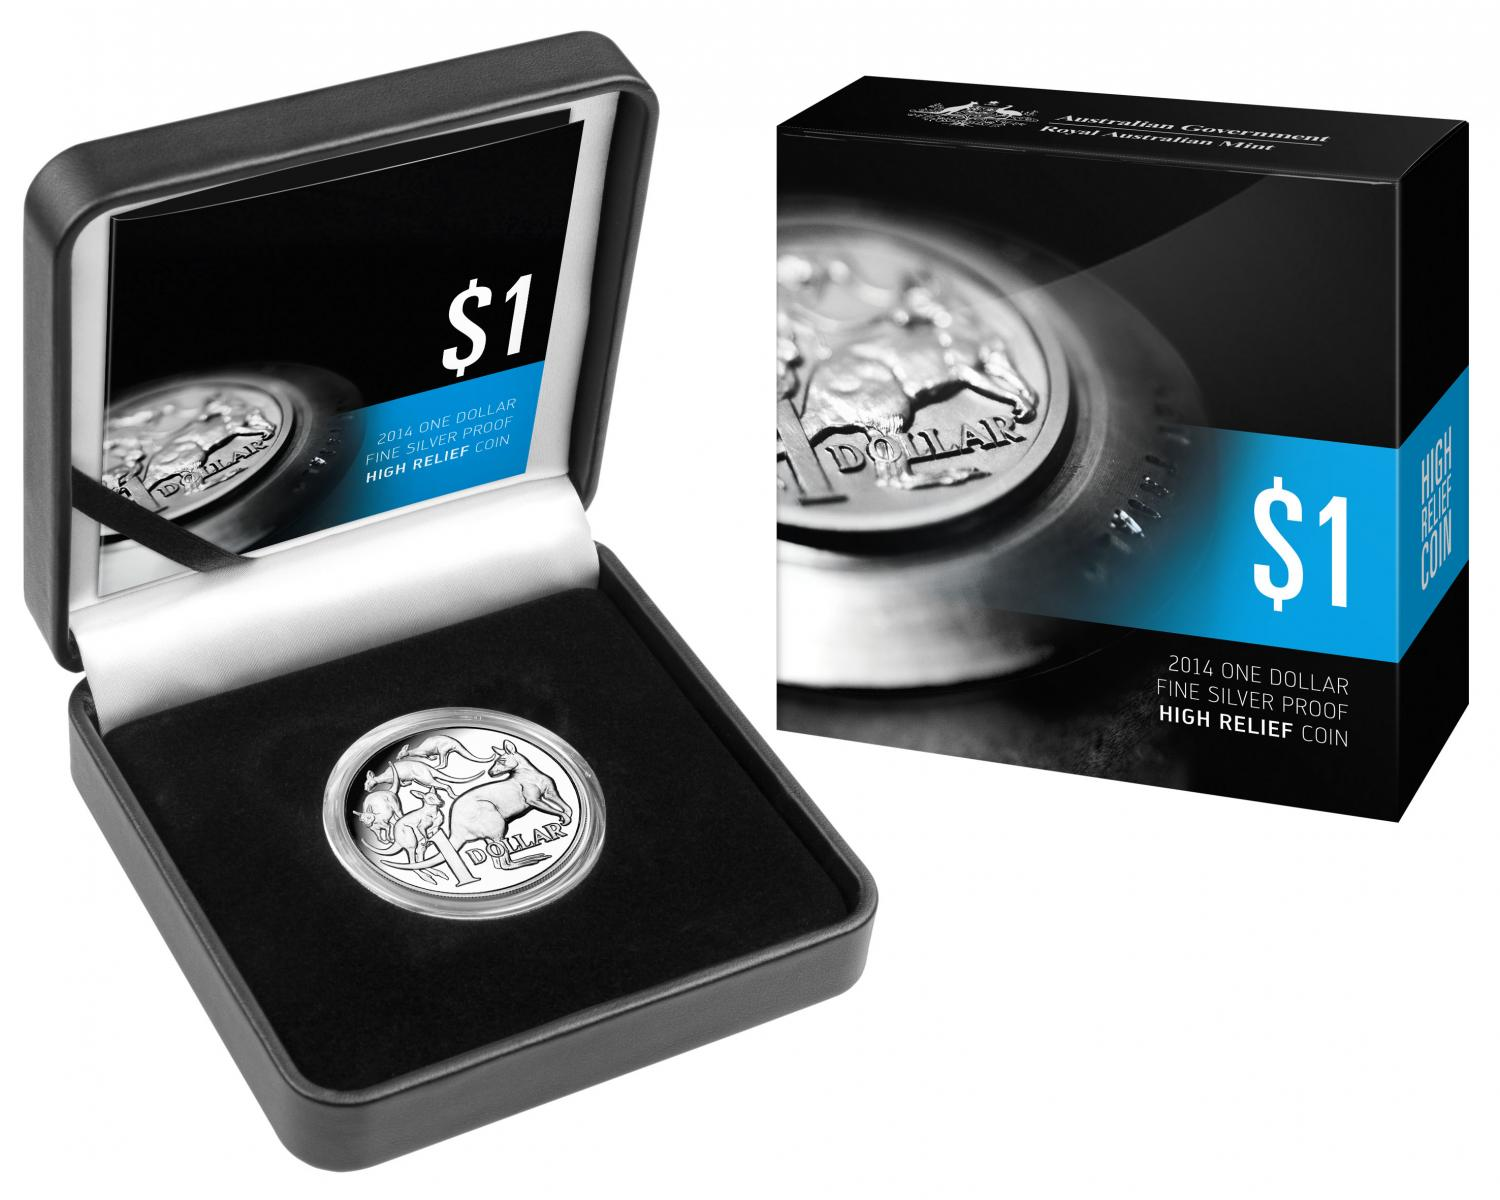 Thumbnail for 2014 One Dollar 1oz Silver Proof High Relief Coin - 30th Anniversary of the Dollar Coin